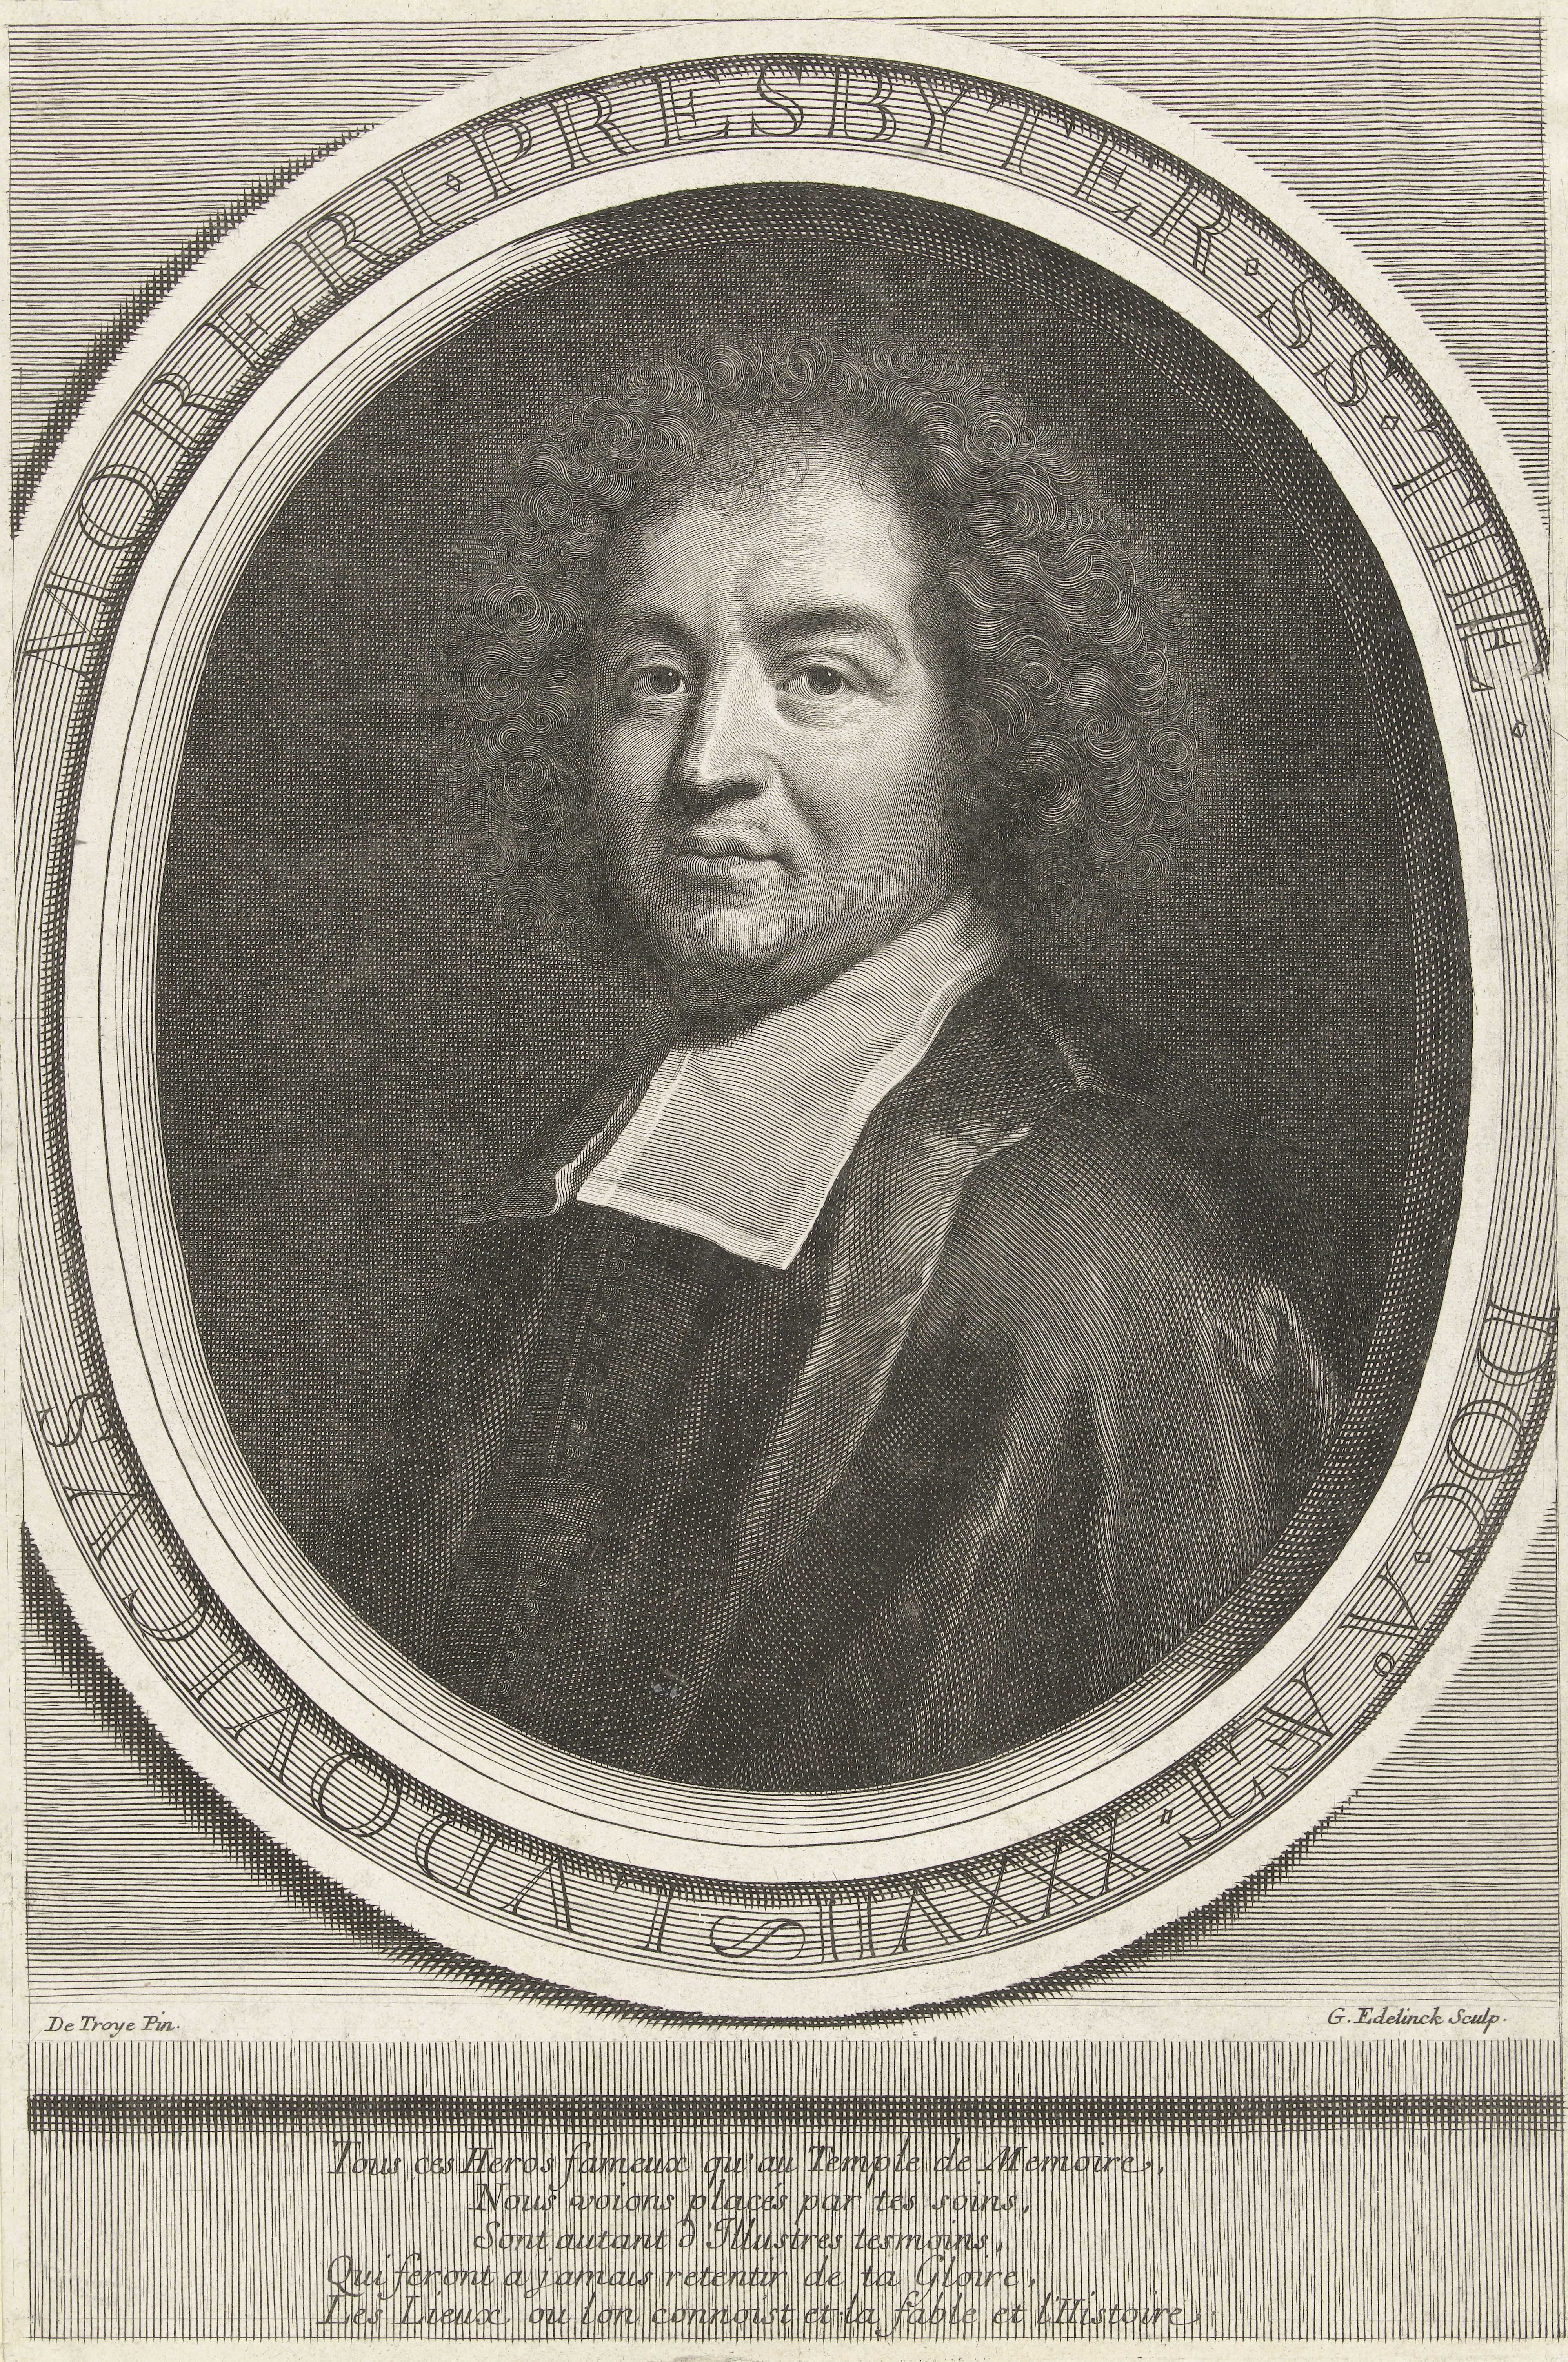 Louis Moréri, frontispiece, etching by ''Gerard Edelinck'' after a drawing by ''De Troyes'', 17th century